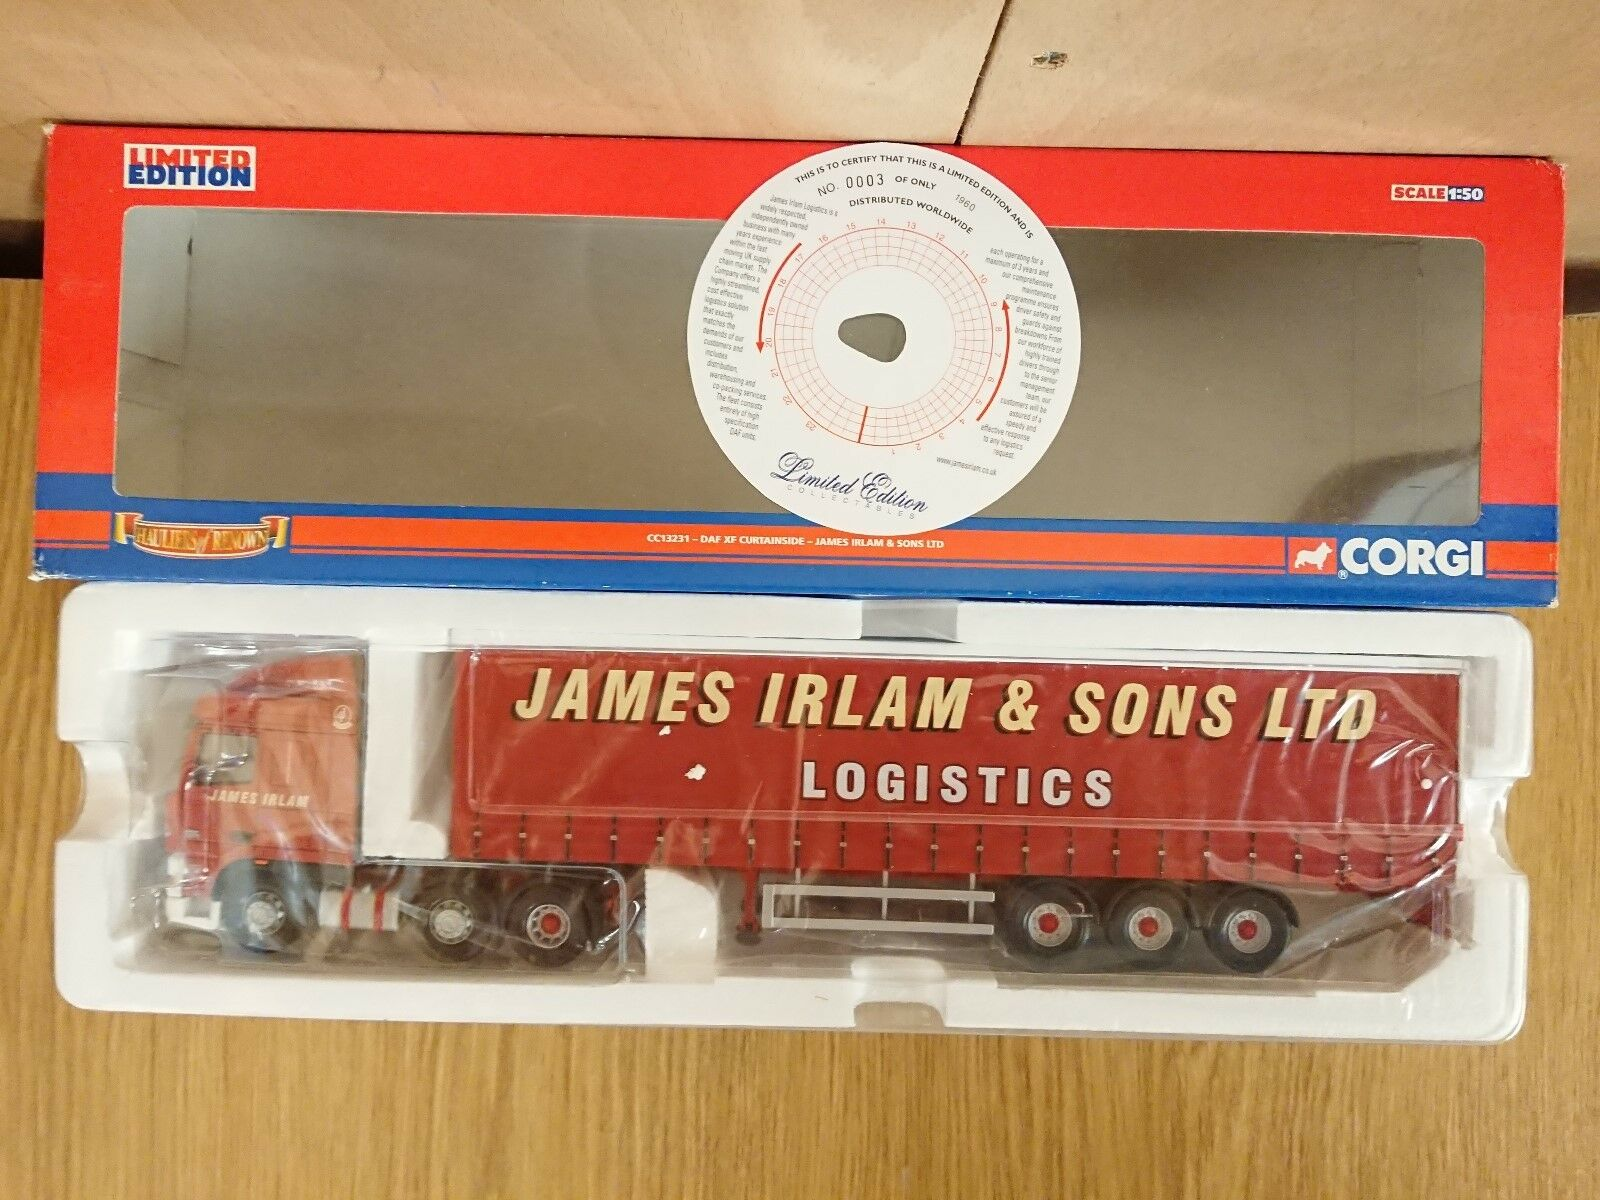 Corgi CC13231 DAF XF Curtainside James Irlam & Sons Ltd Ed No. 0003 of 1960